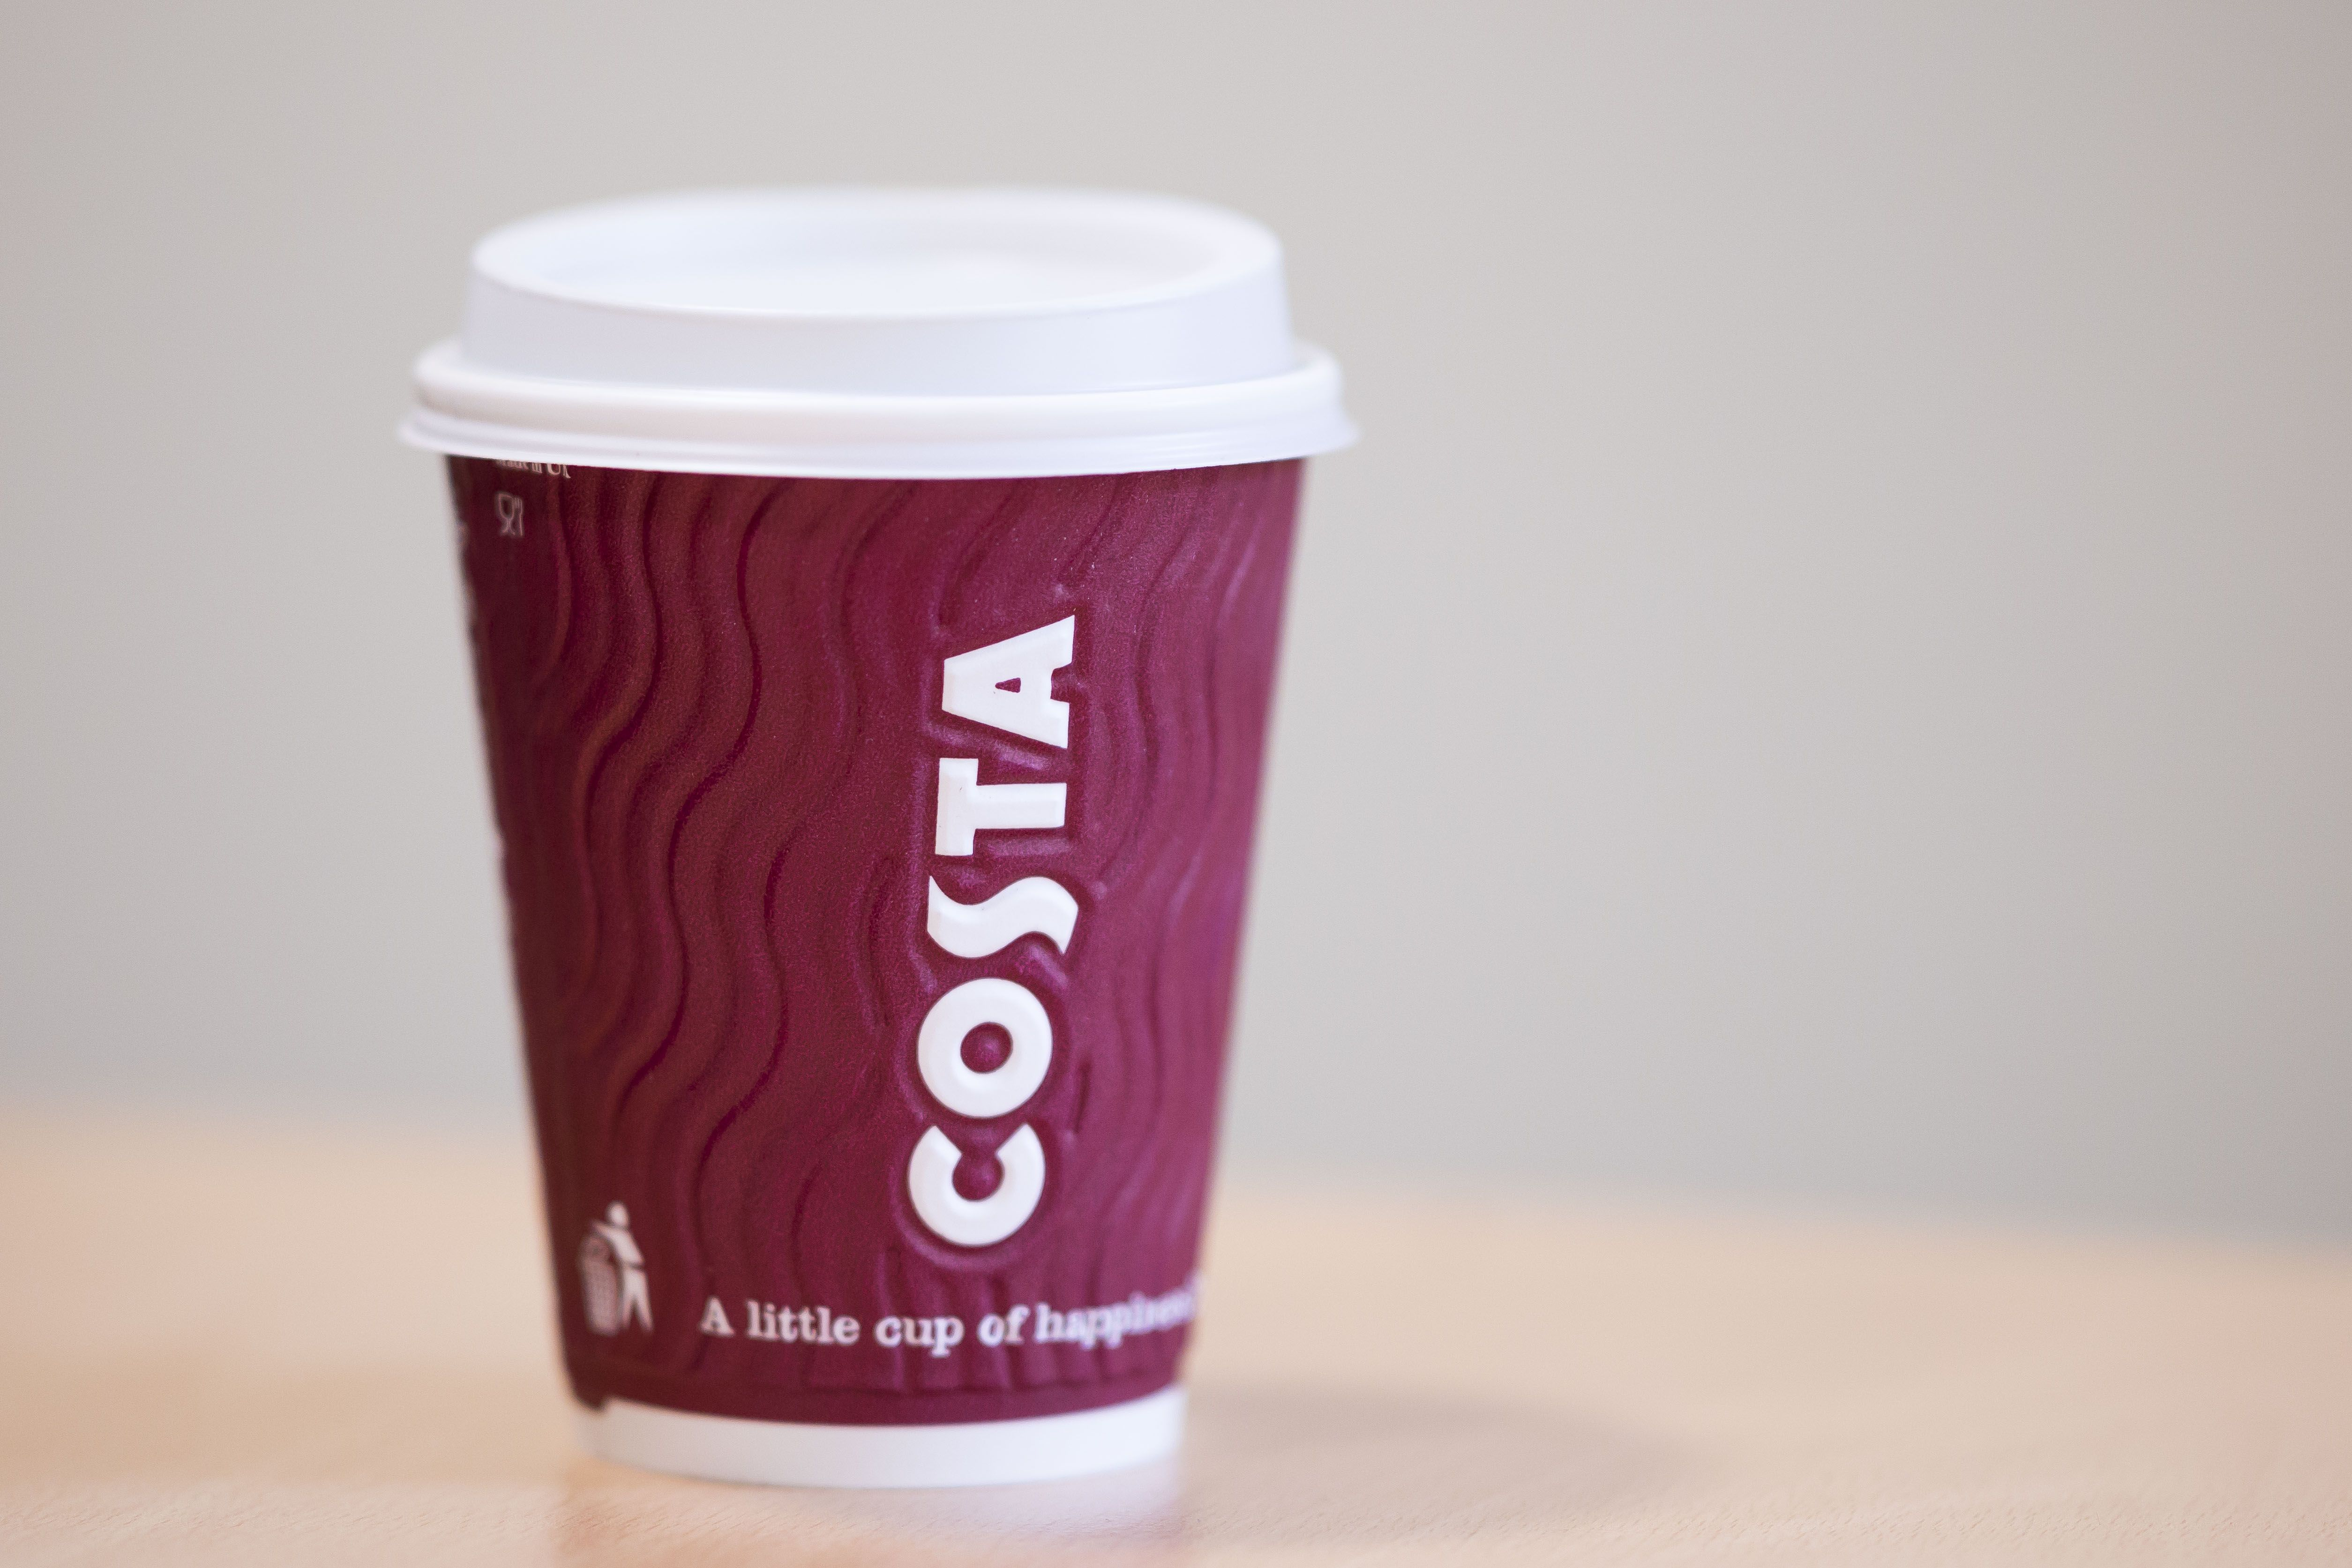 Costa coffee and reusable mugs for home